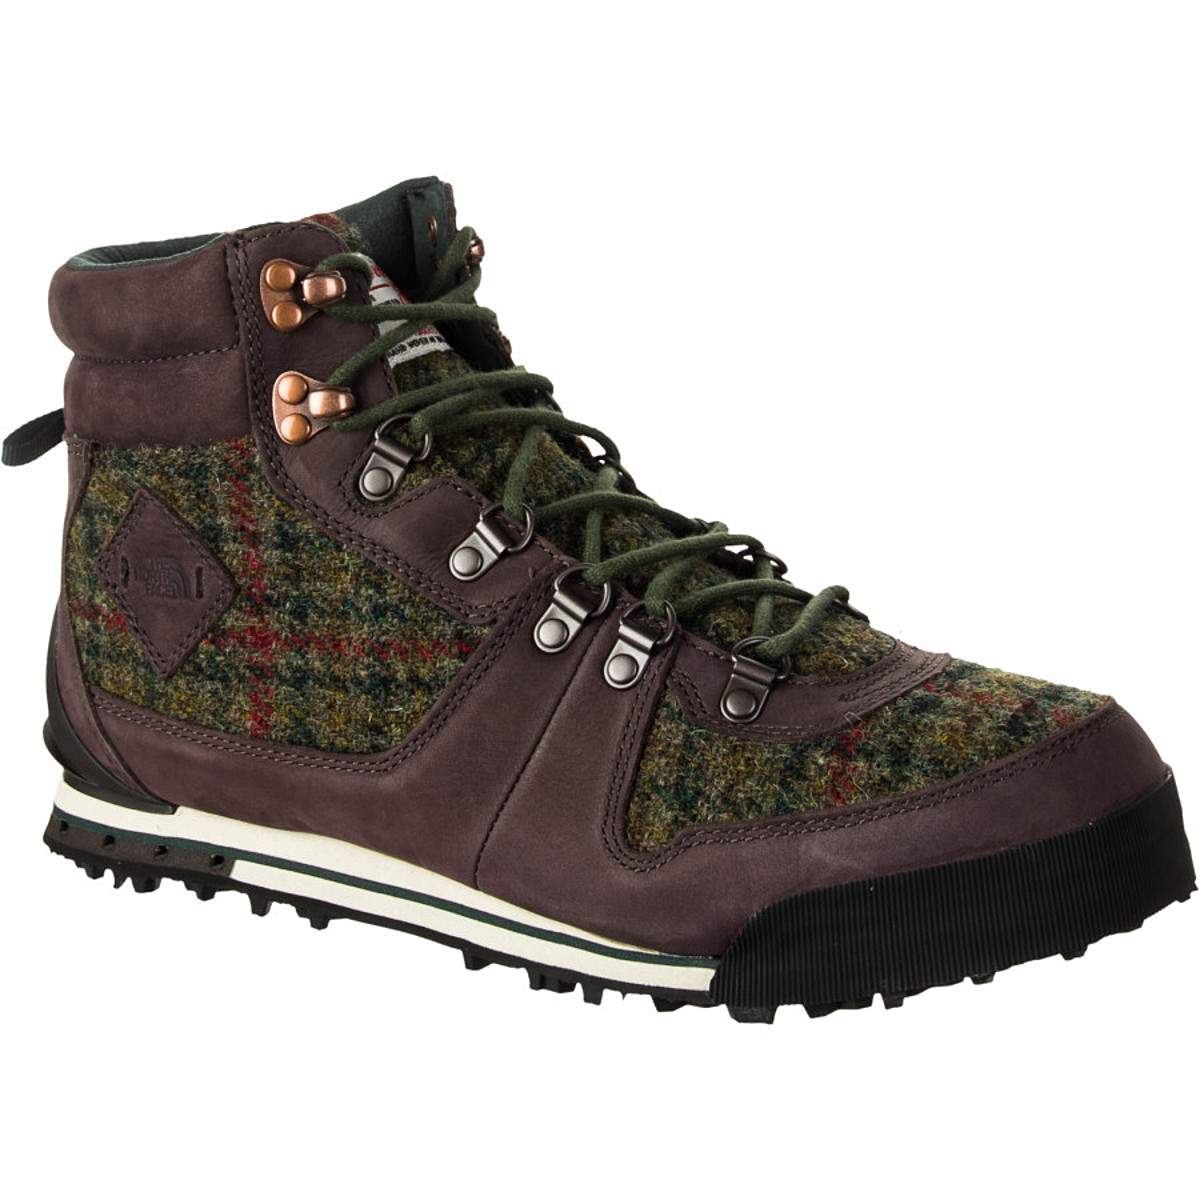 The North Face Back-To-Berkeley Collab Boot